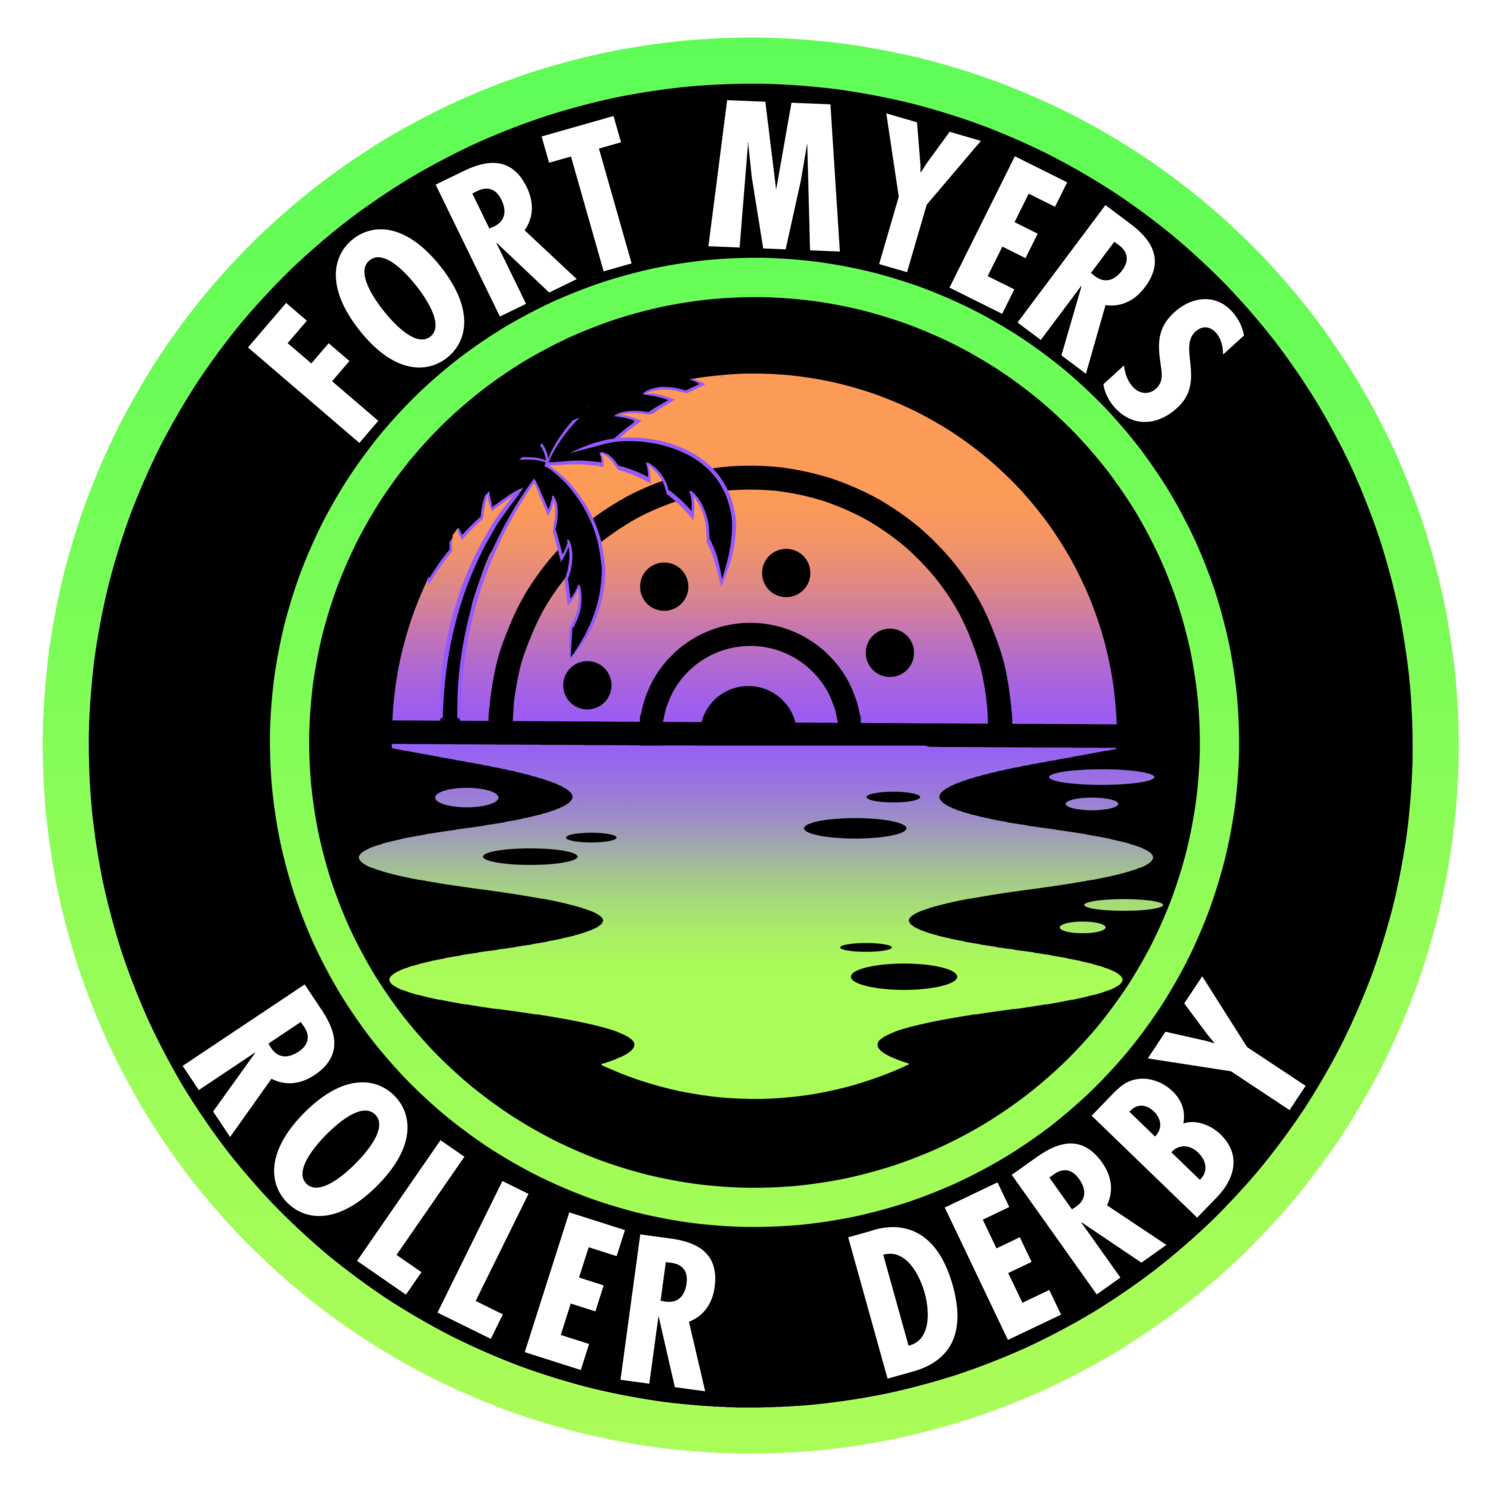 Fort Myers Roller Derby